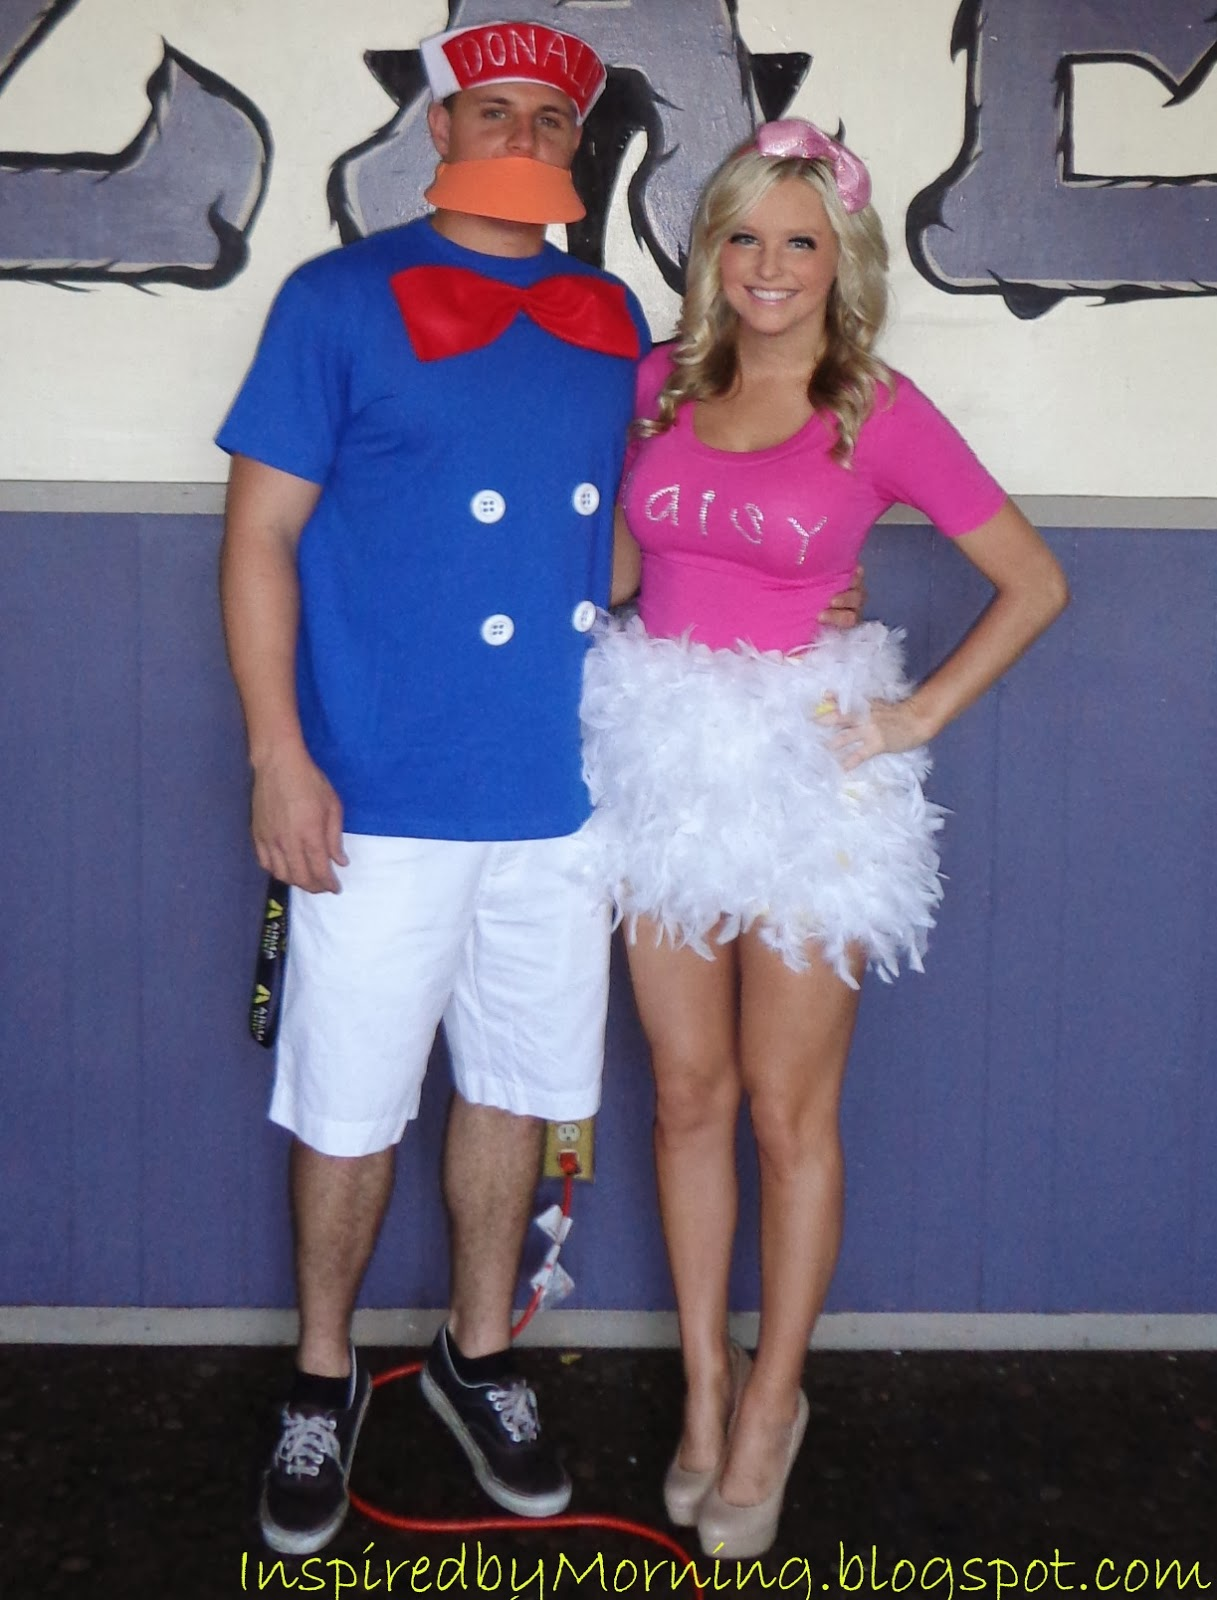 b4b92bff7d7 Saturday February 1 2014 Sc 1 St Inspired By Morning. image number 5 of donald  duck diy costume ...